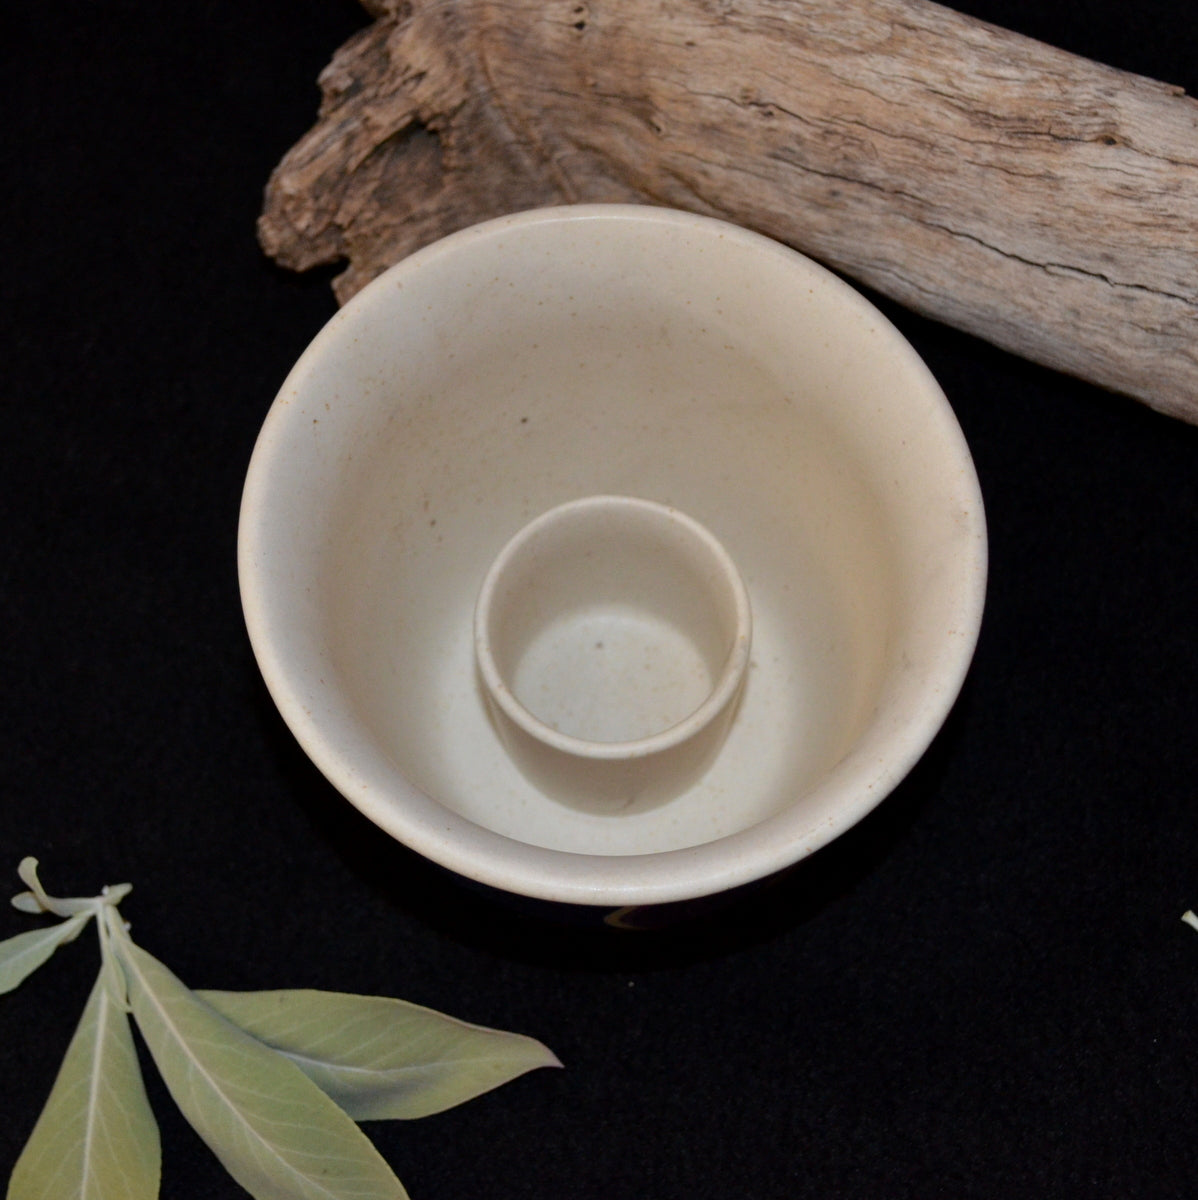 Ceramic Smudge Holder - White Sage Cleansing Negativity - Now at Illiom Crystals - Afterpay Available